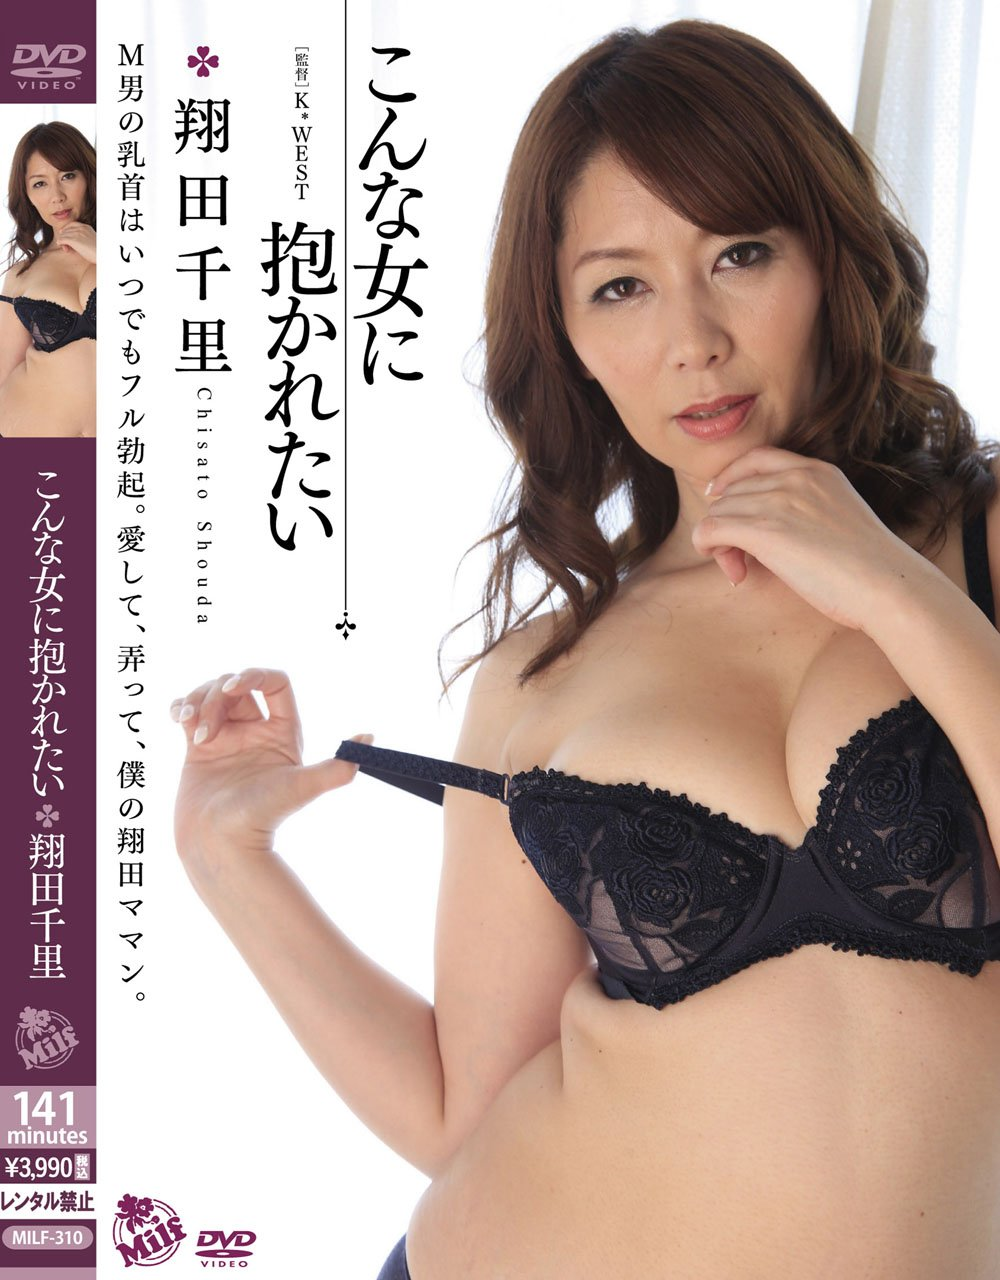 Collection of japanese porn